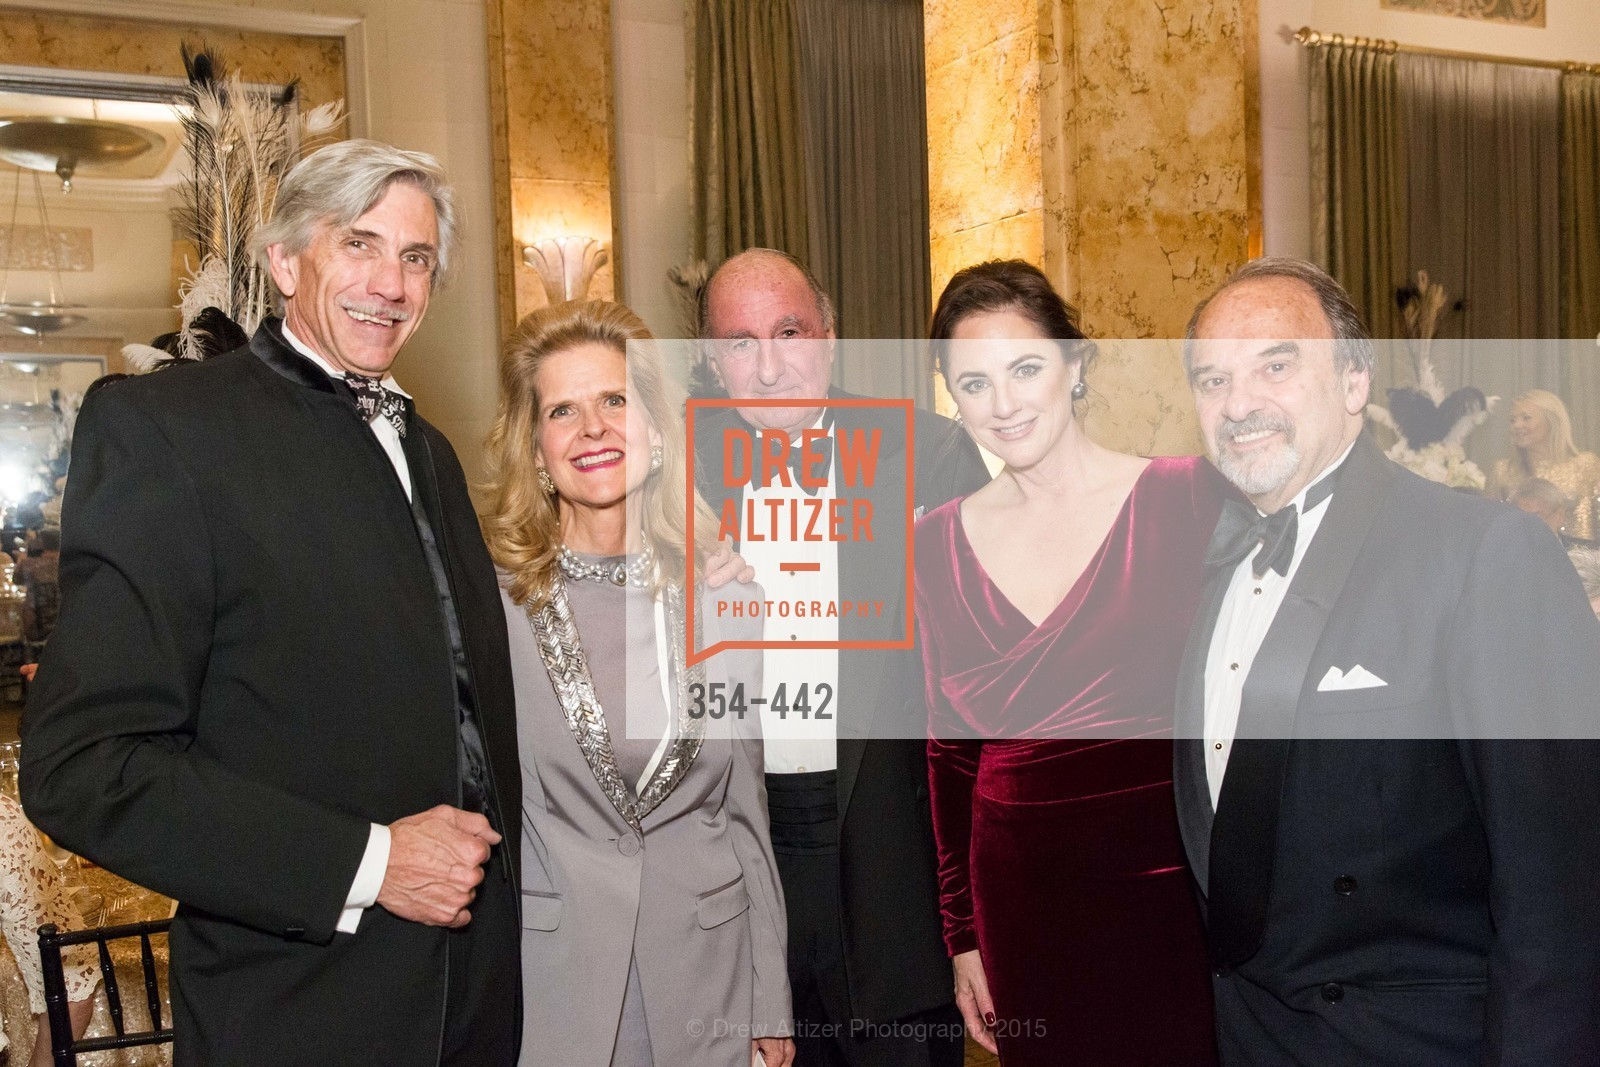 Clay Alder, Debbie Vogel, Haig Harris, Lisa Harris, Lorin Vogel, Metropolitan Club Presents THE CENTENNIAL GALA, Metropolitan Club. 640 Sutter Street, November 5th, 2015,Drew Altizer, Drew Altizer Photography, full-service agency, private events, San Francisco photographer, photographer california